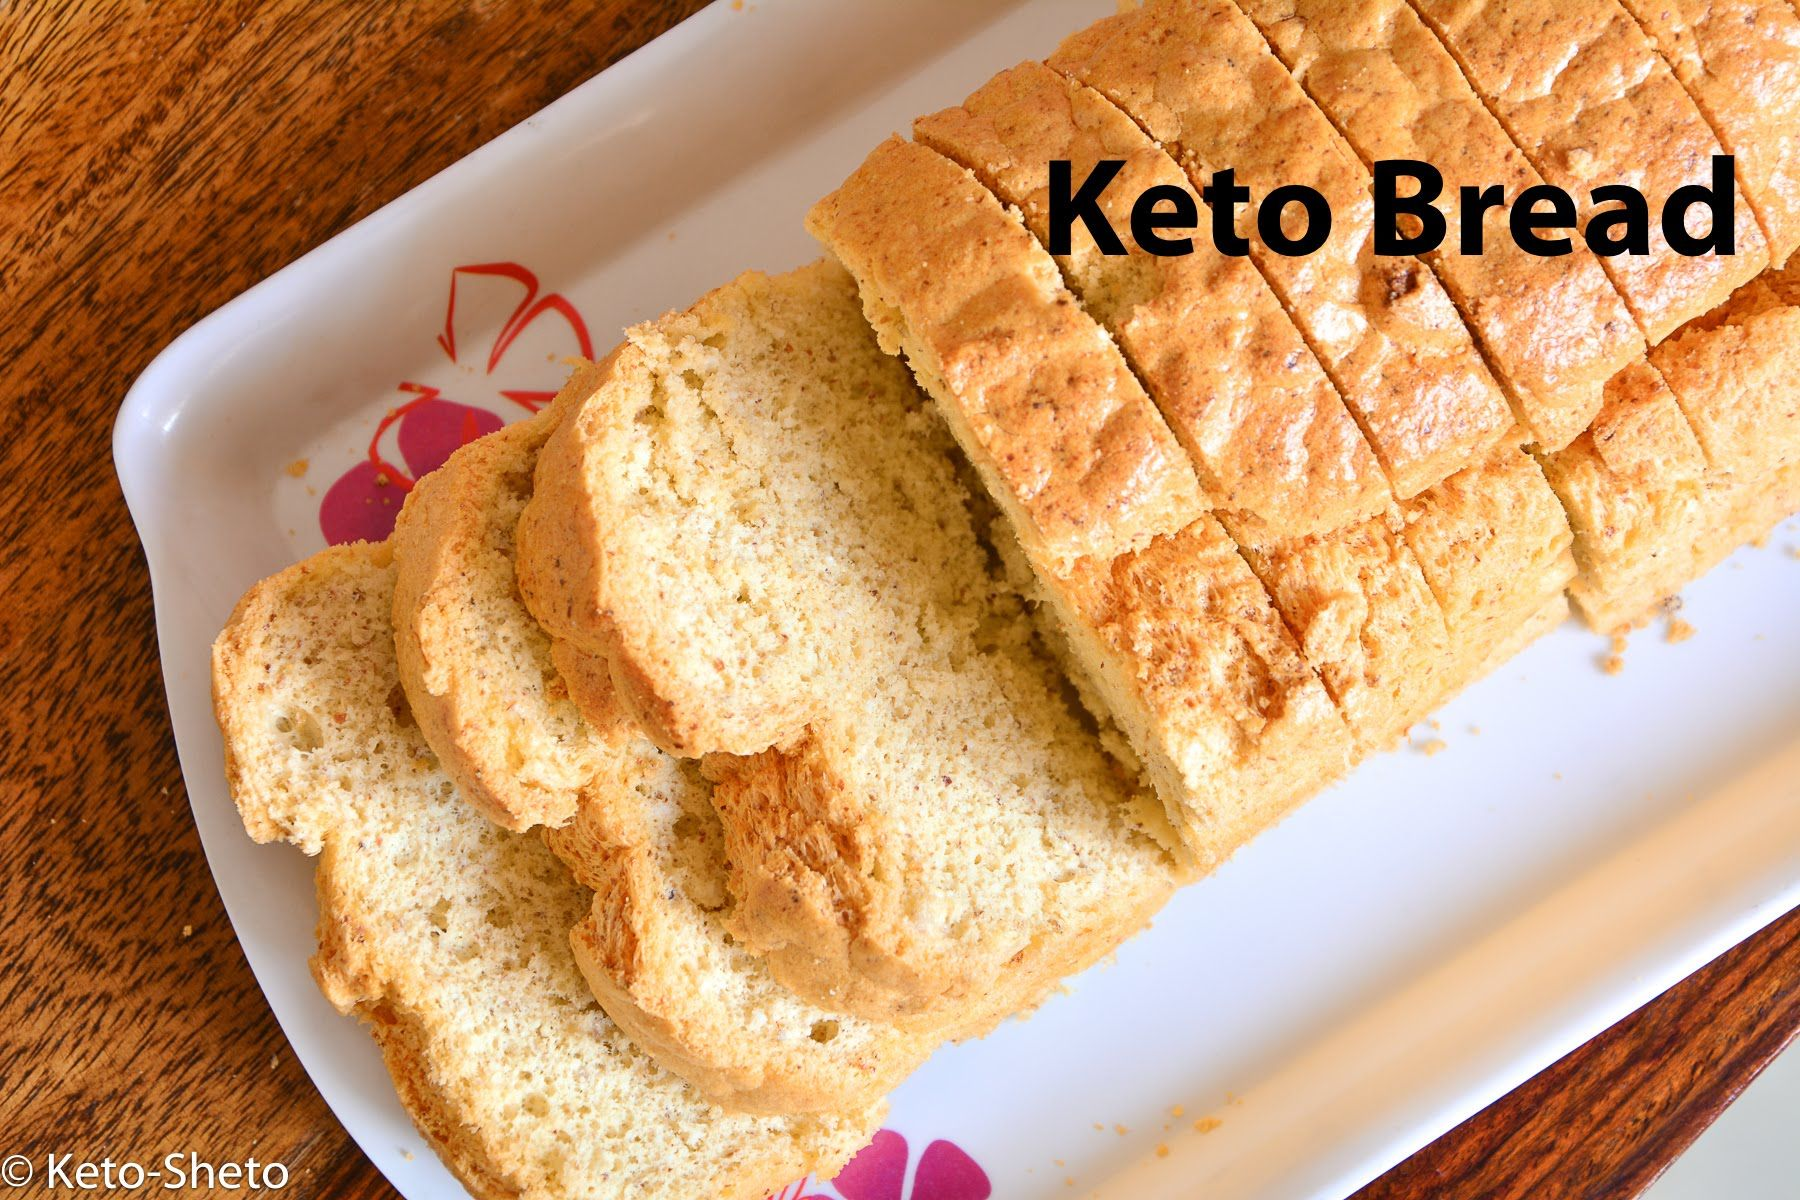 Pin by Sally Pyle on Keto Recipes | Pinterest | Keto bread, Keto and Bread recipes